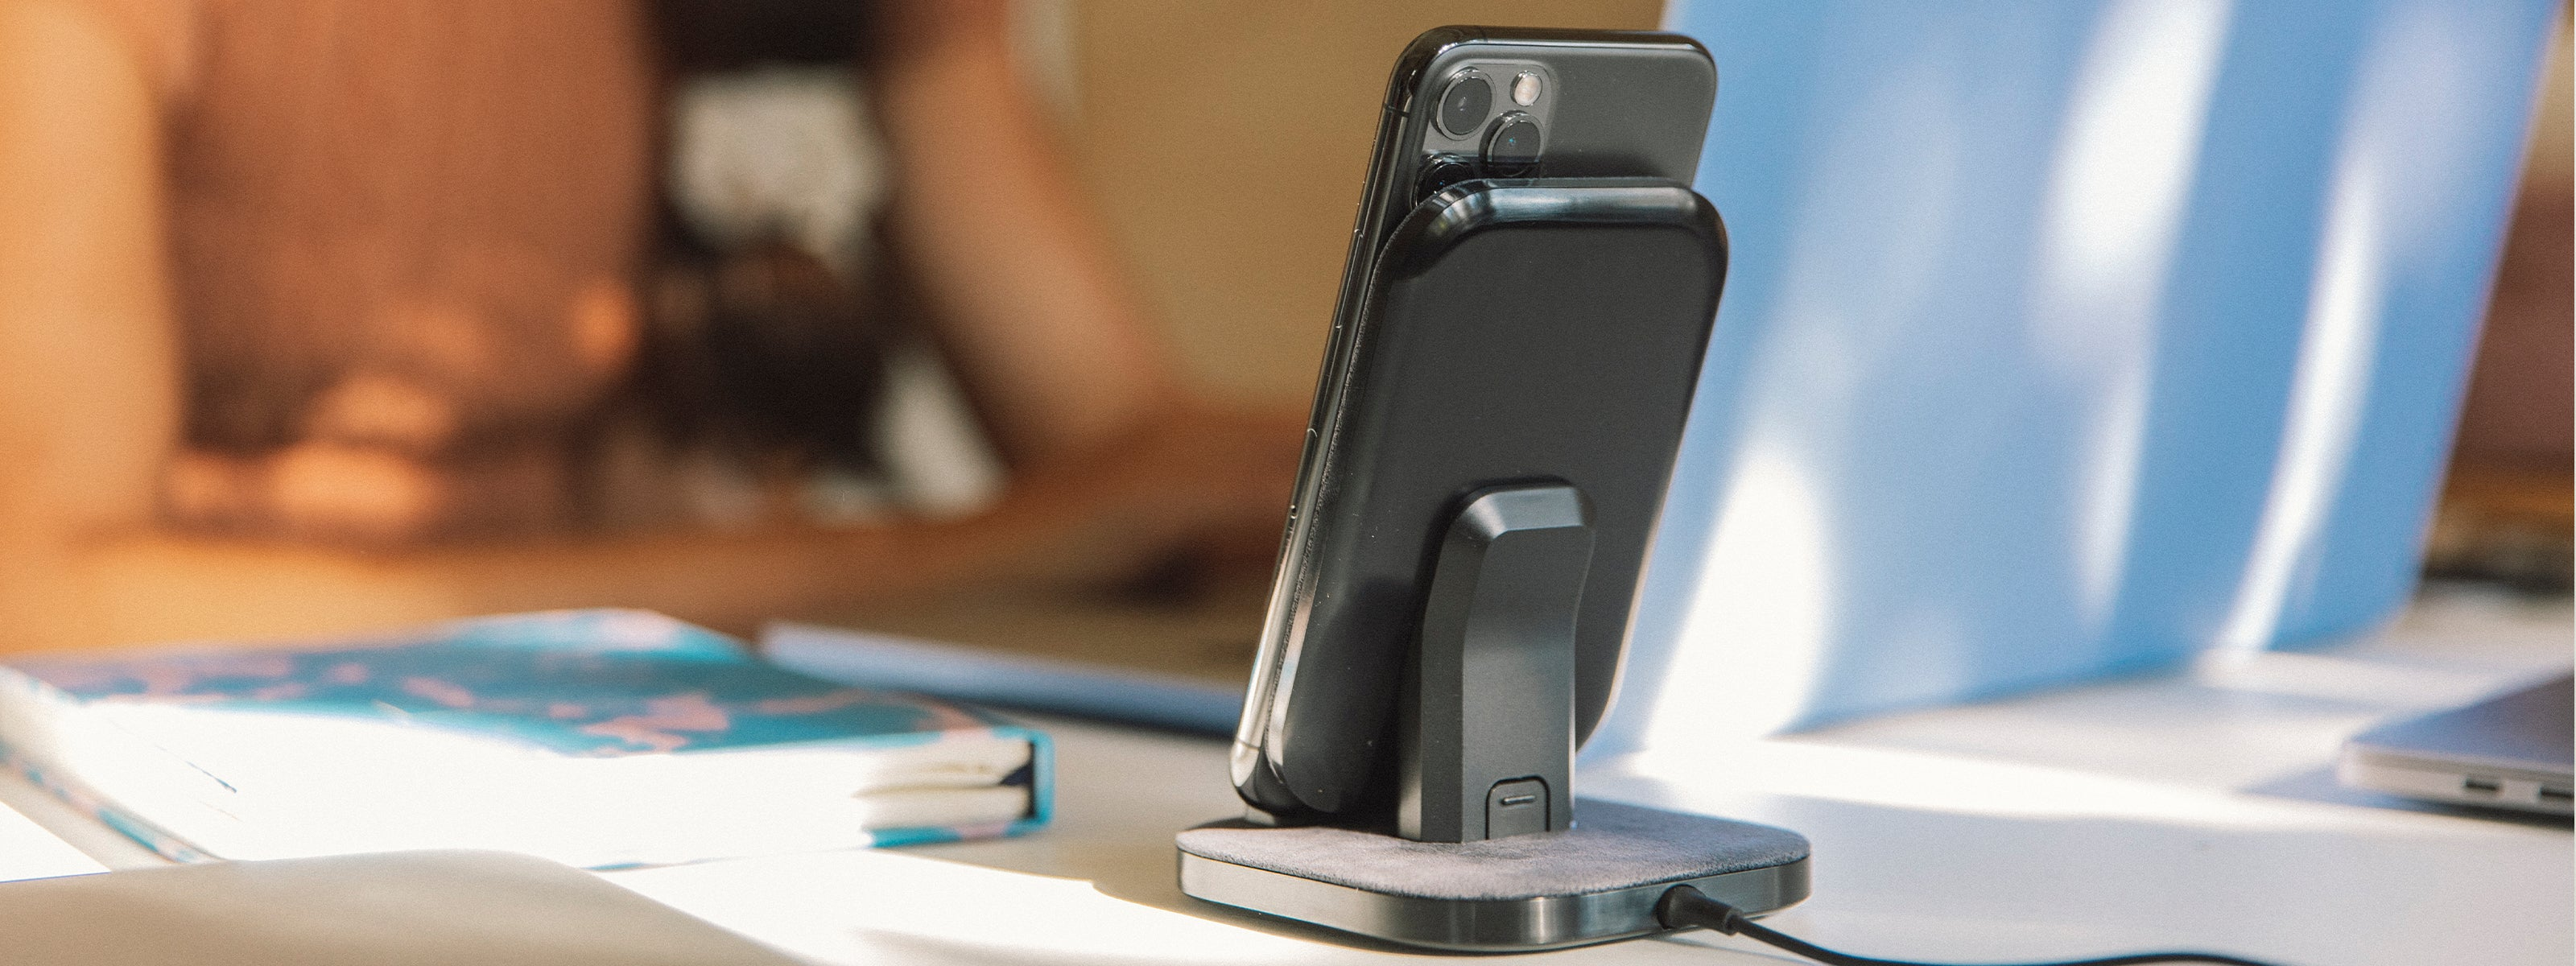 iPhone vertically charging